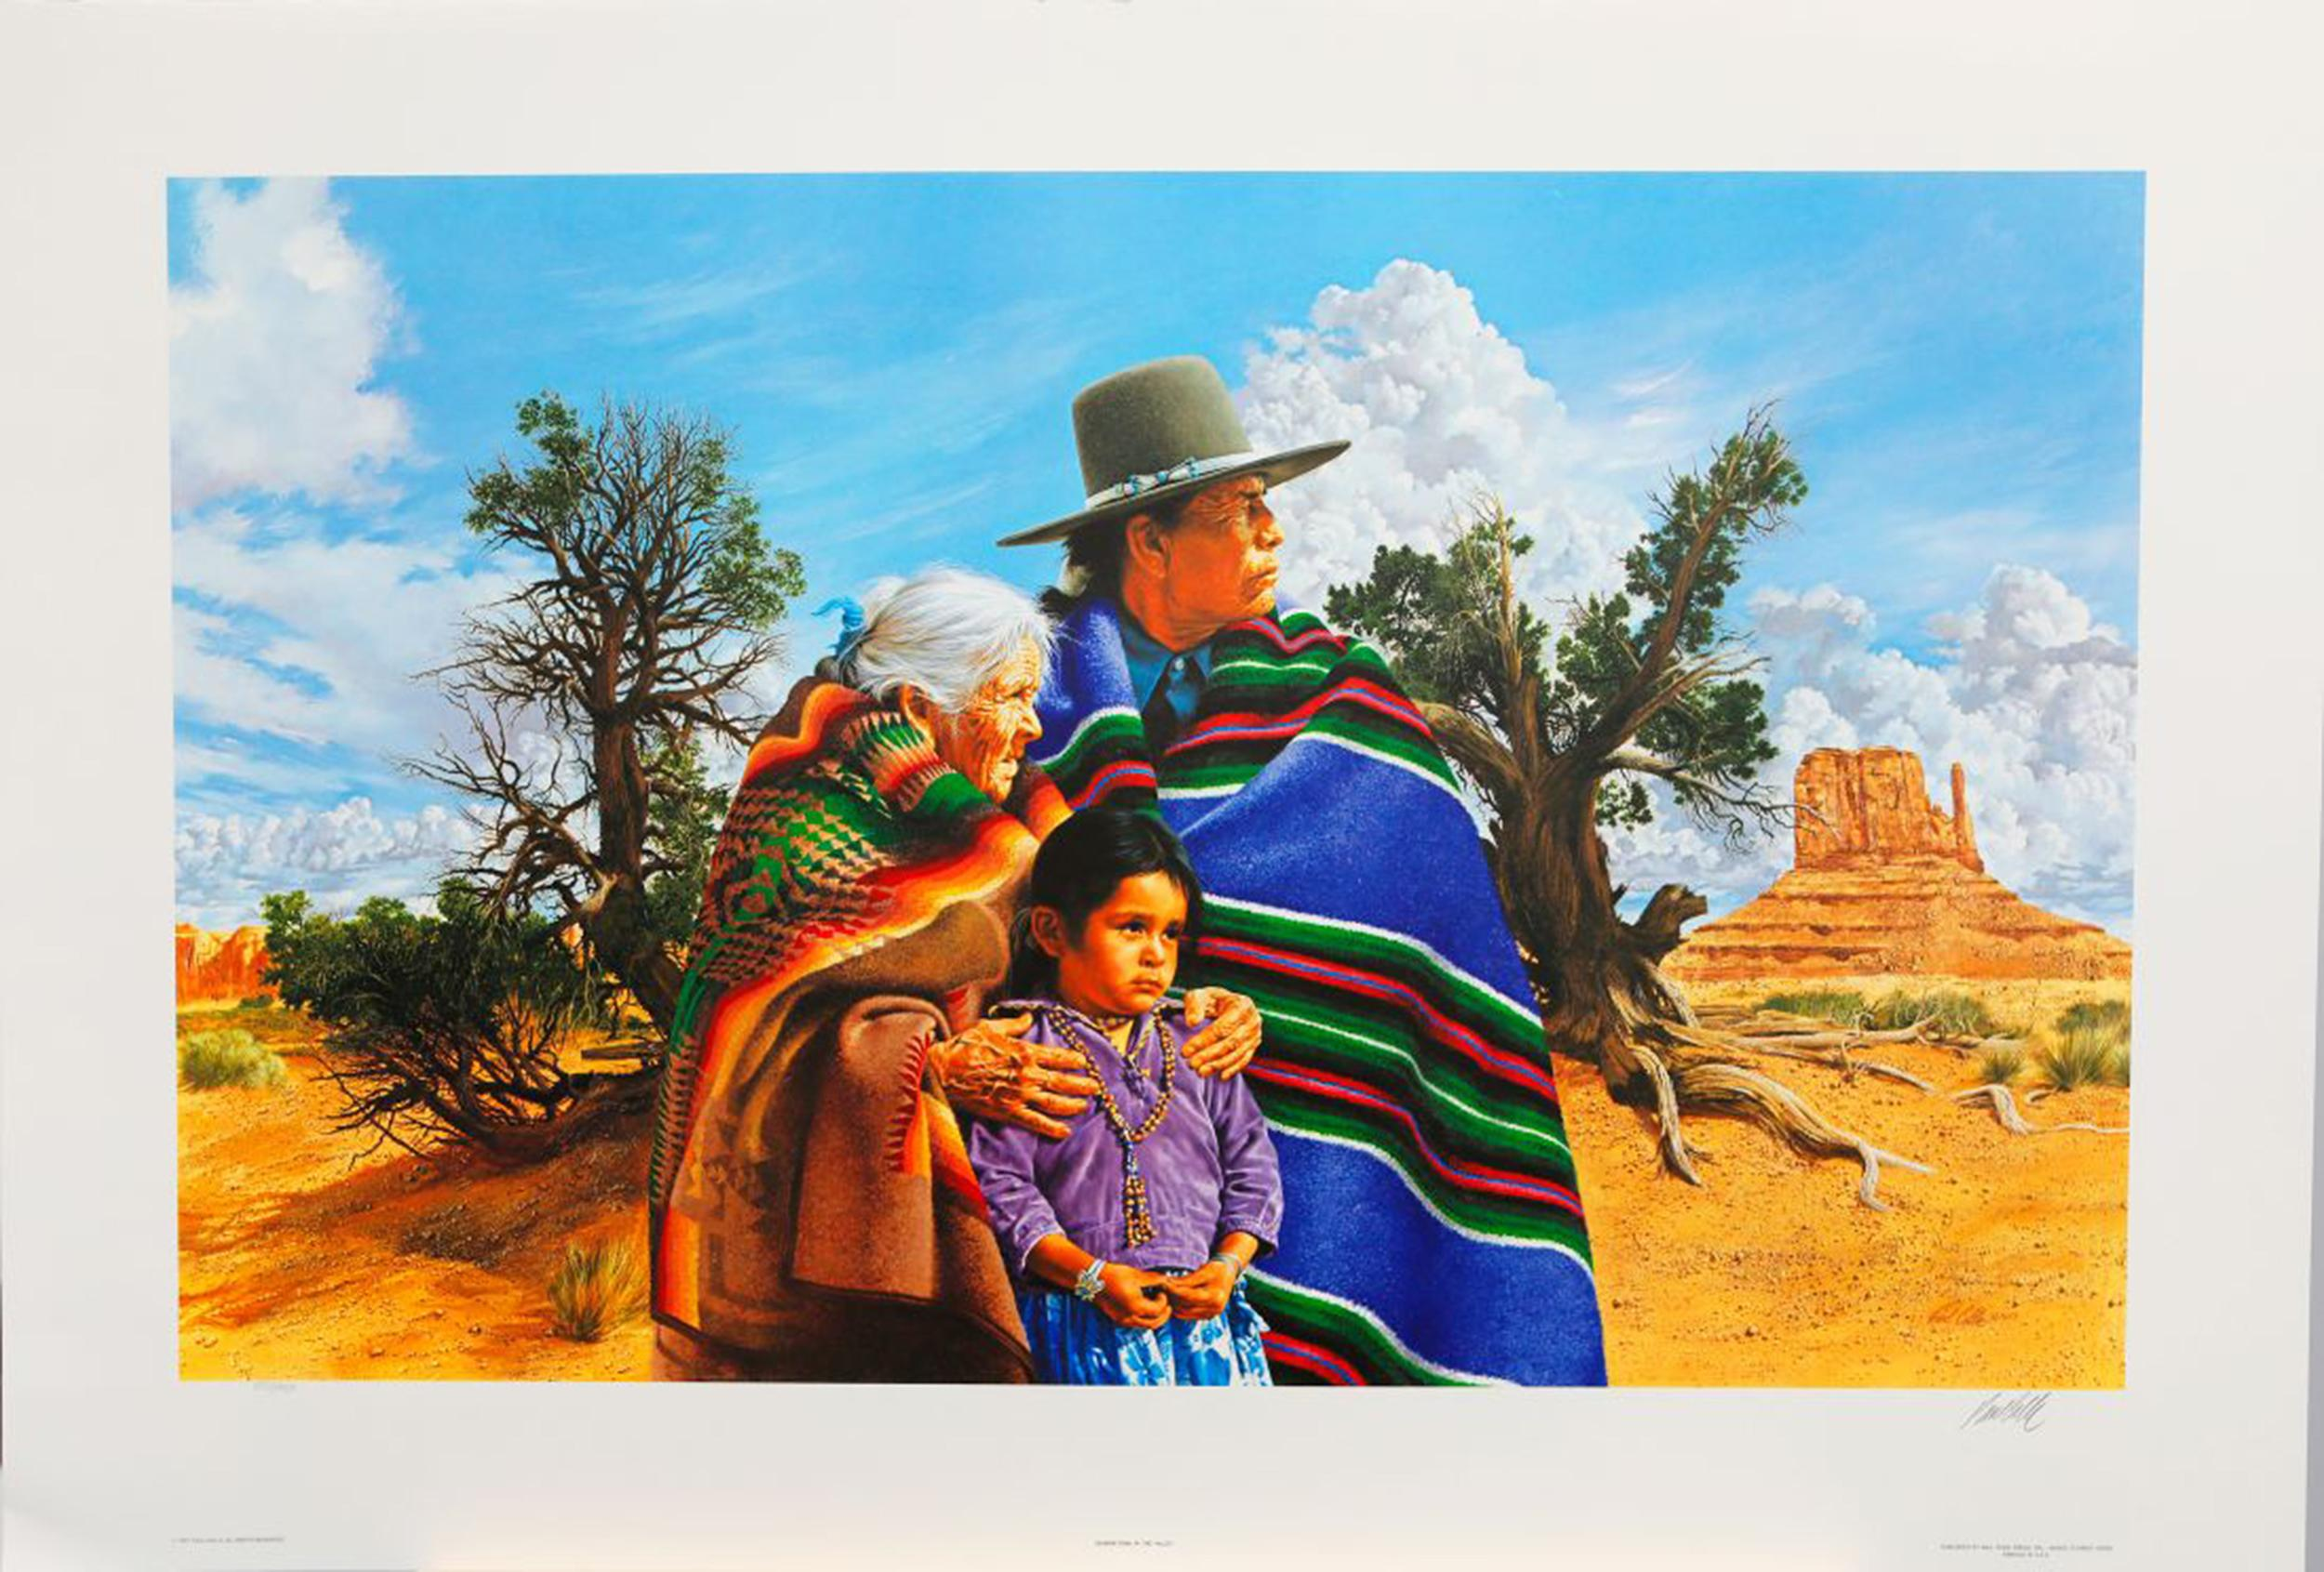 """Paul Calle's """"Generations In The Valley"""" Limited Edition Print"""